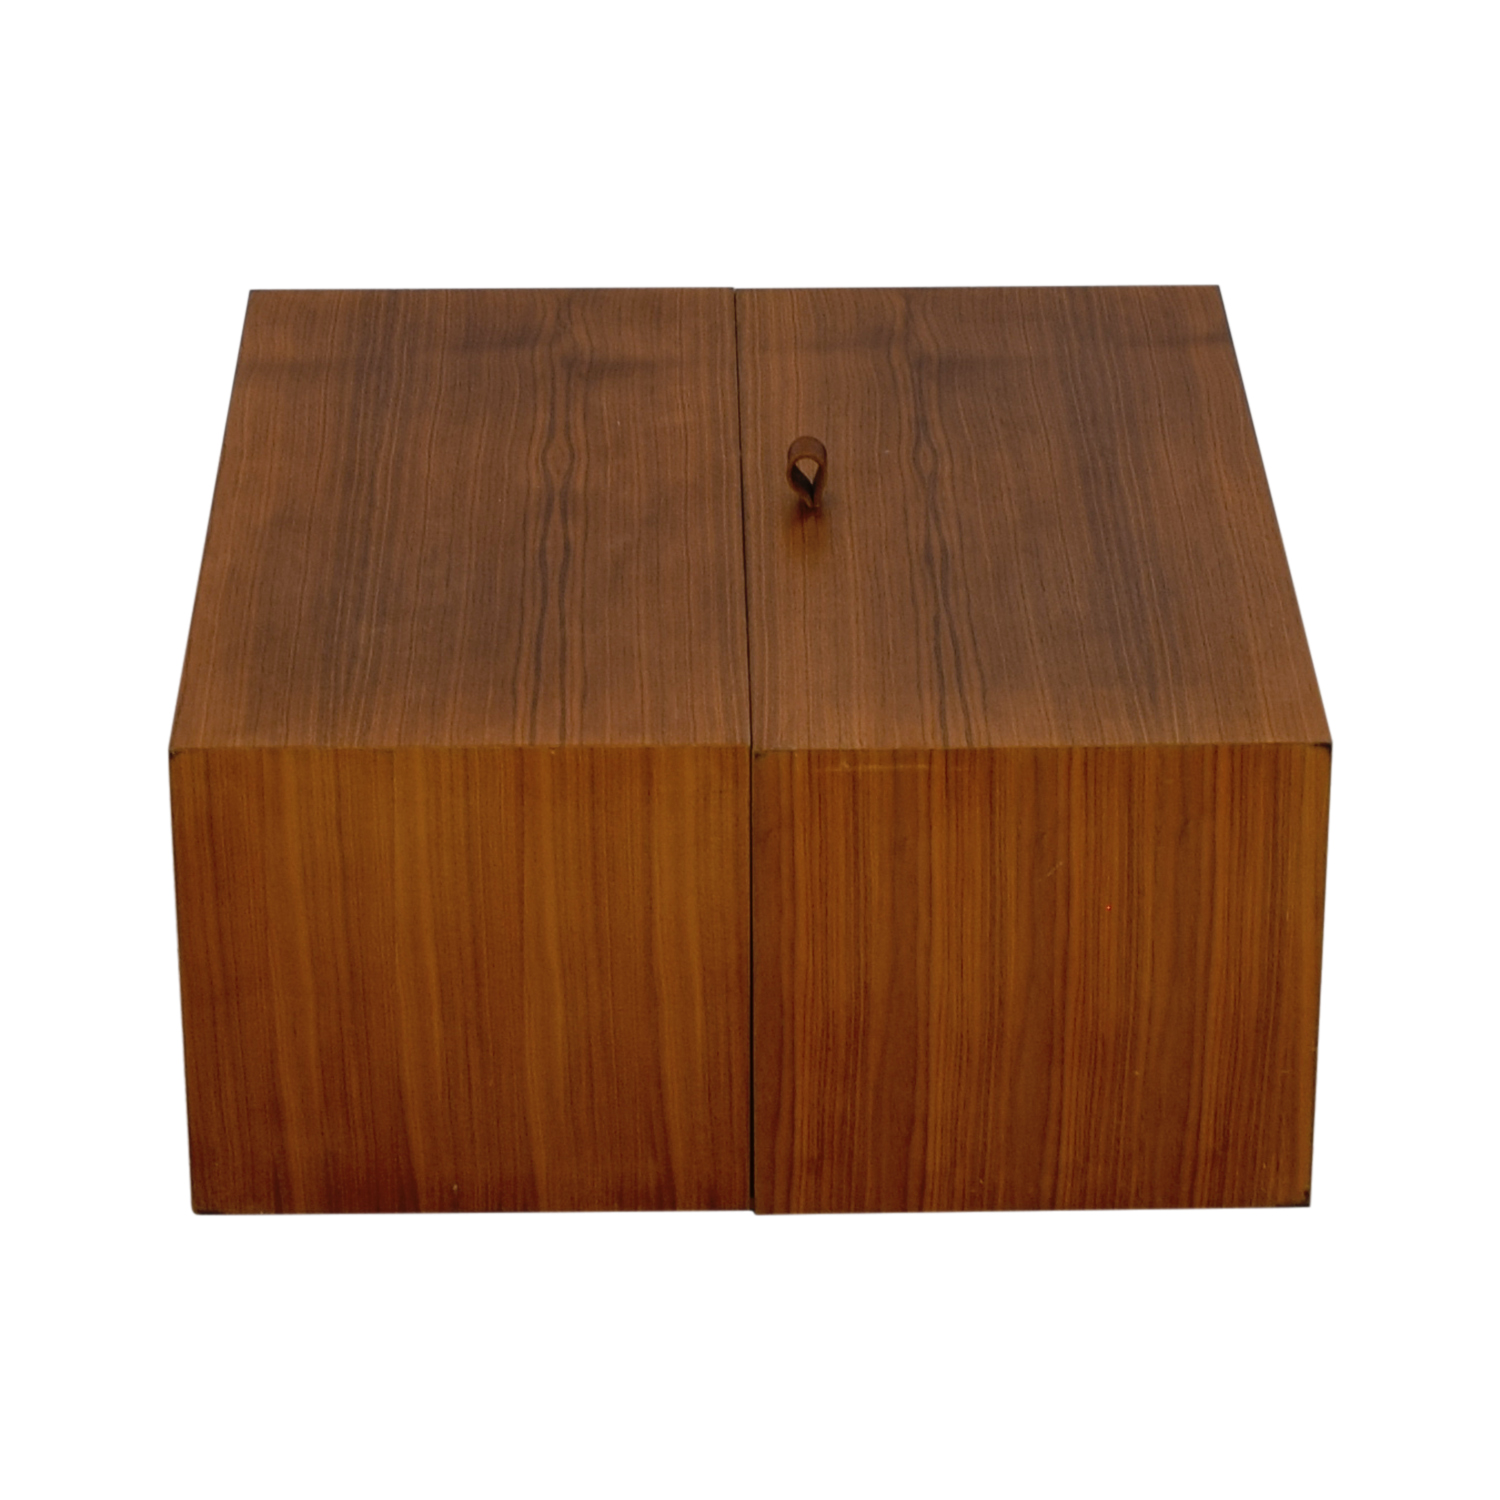 shop Heal's of London Heal's of London Coffee Table with Hidden Bar online